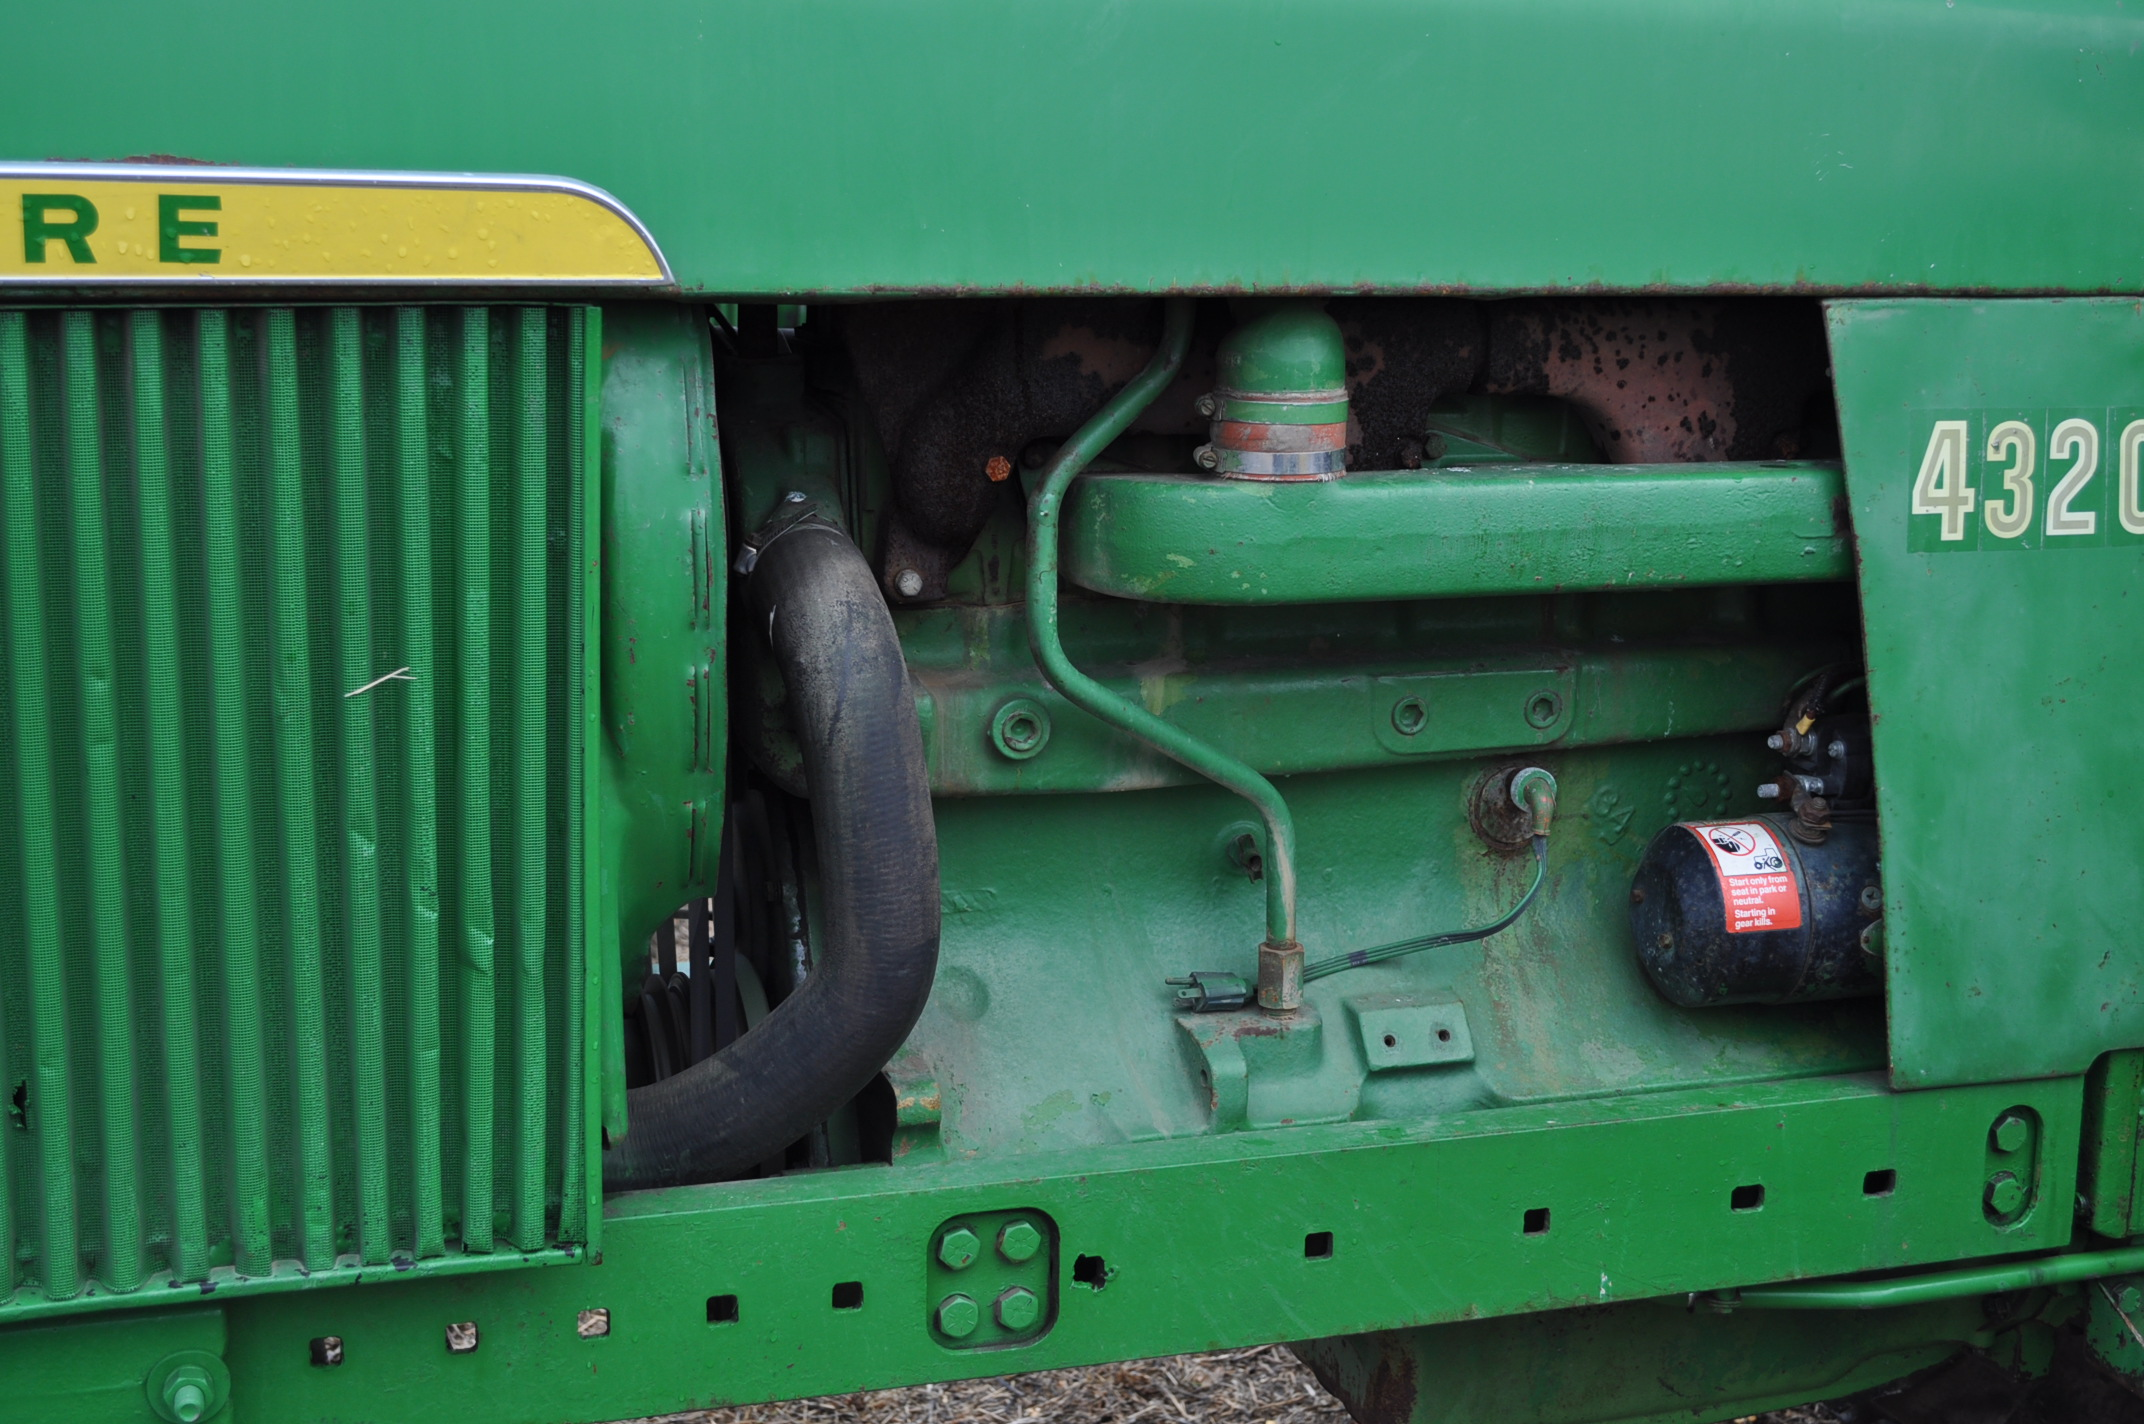 John Deere 4320 tractor, diesel, 18.4-38 duals, 10.00-16 wide front, Syncro, 2 hyd remotes, 540/1000 - Image 12 of 20